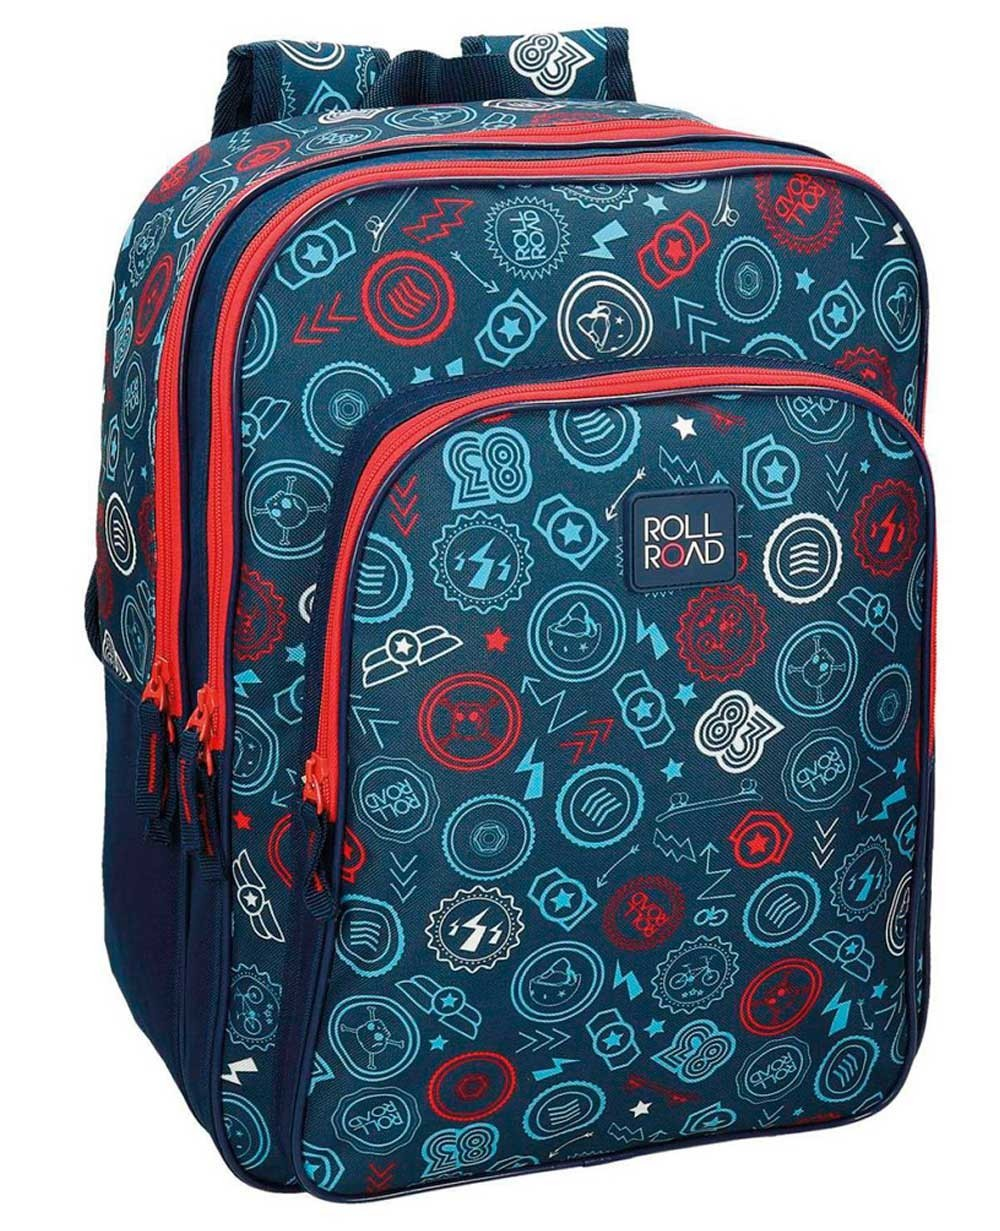 Roll Road Go Mochila adaptable Azul 0